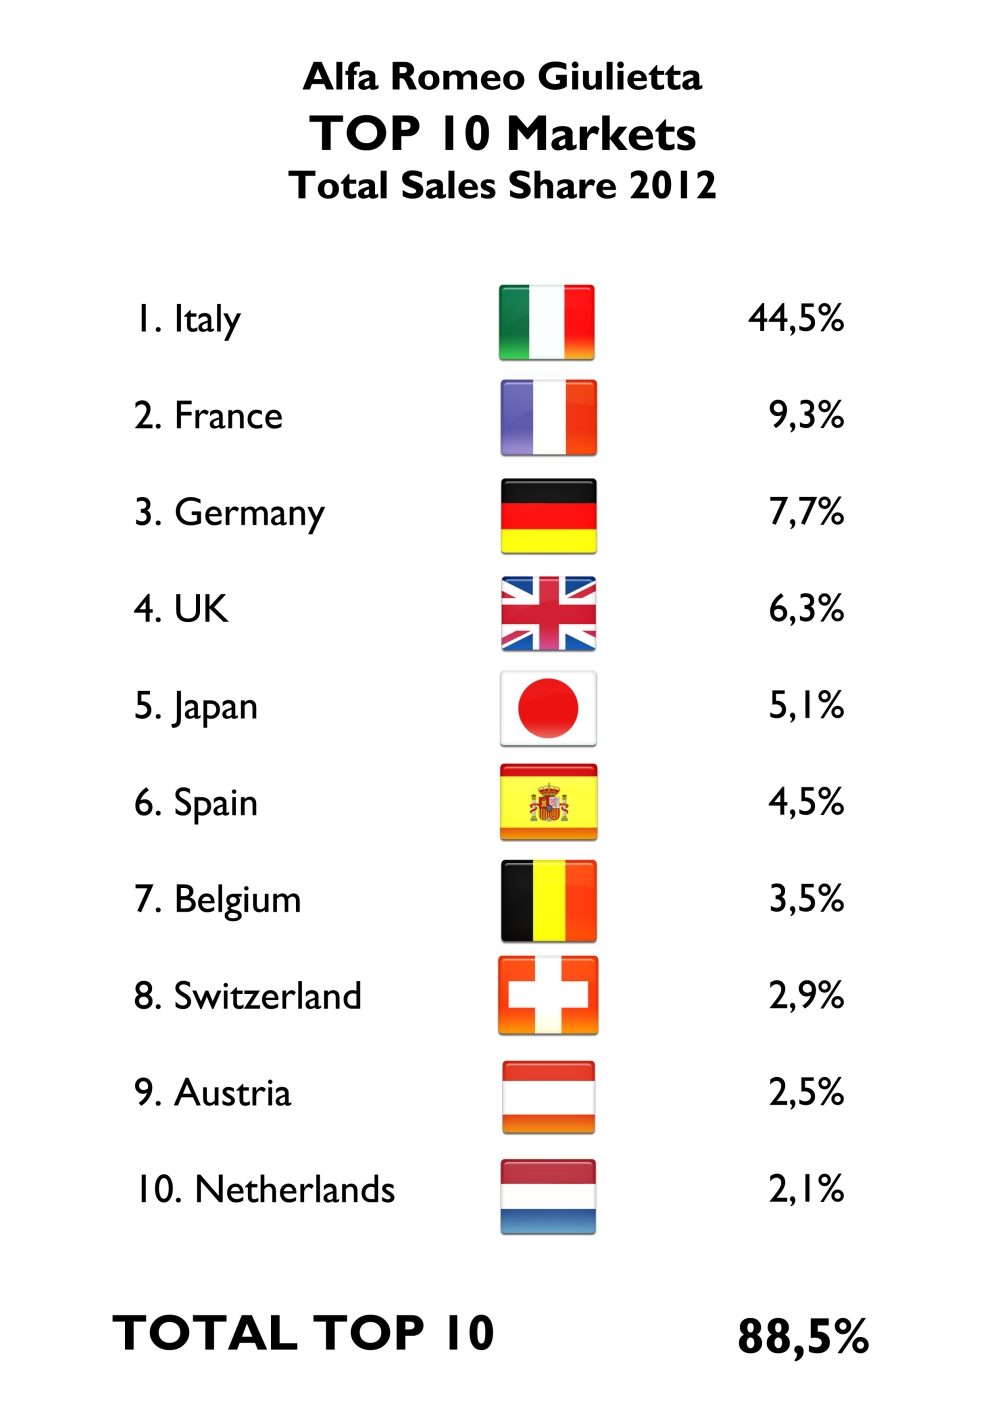 Giulietta's sales are very concentrated in Europe and Italy. That's the main cause of its fall, as Europe and specially Italy are facing one of the worst industry crisis in years.  Japan became the 5th largest  market in only one year. Source: FGW Data Basis, Best Selling Cars Blog